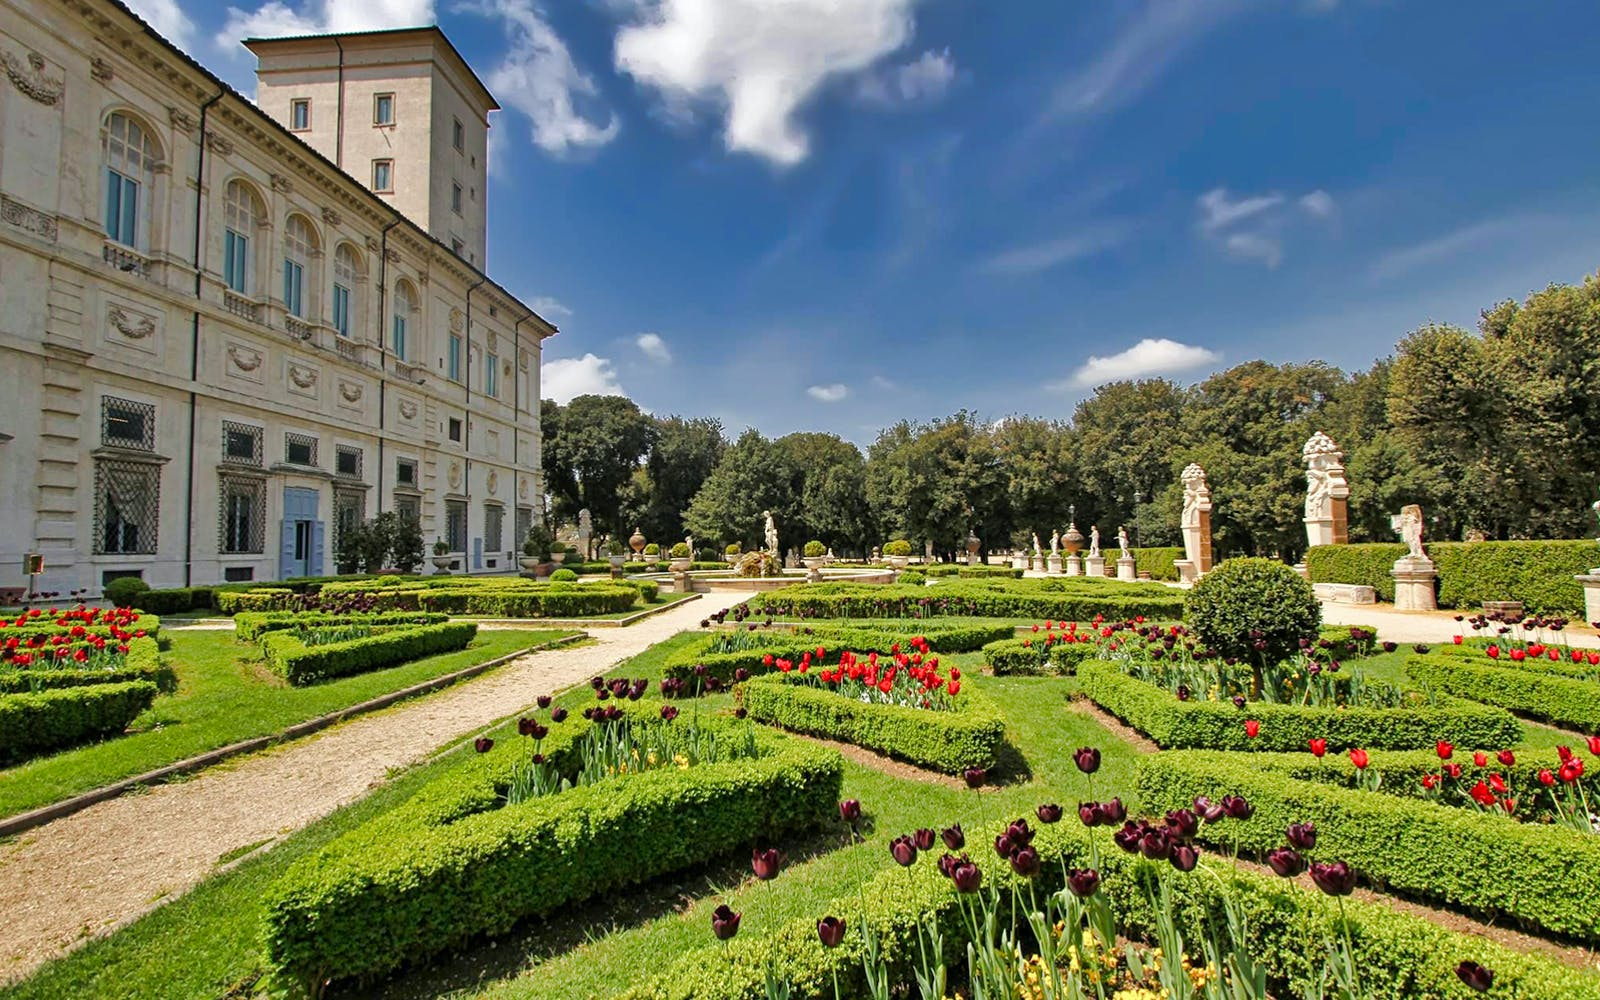 villa borghese gallery and gardens skip the line guided tour-3